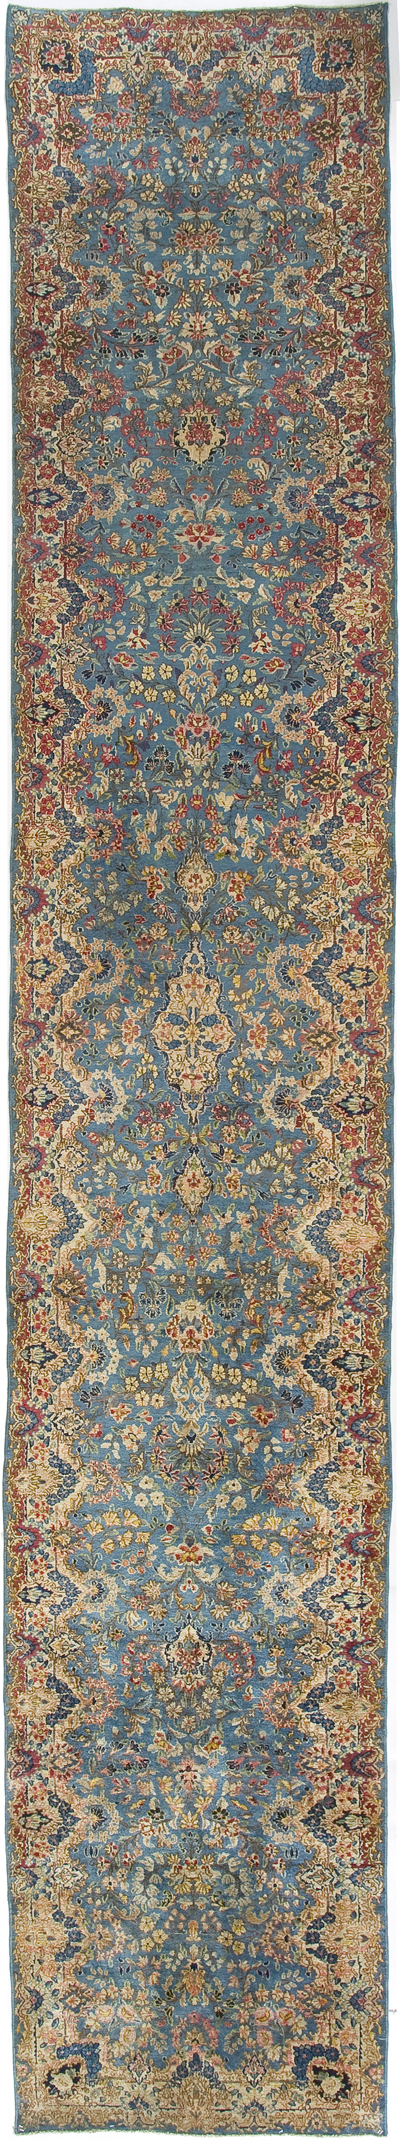 "Kirman Runner 17' 5"" x 2' 10"""